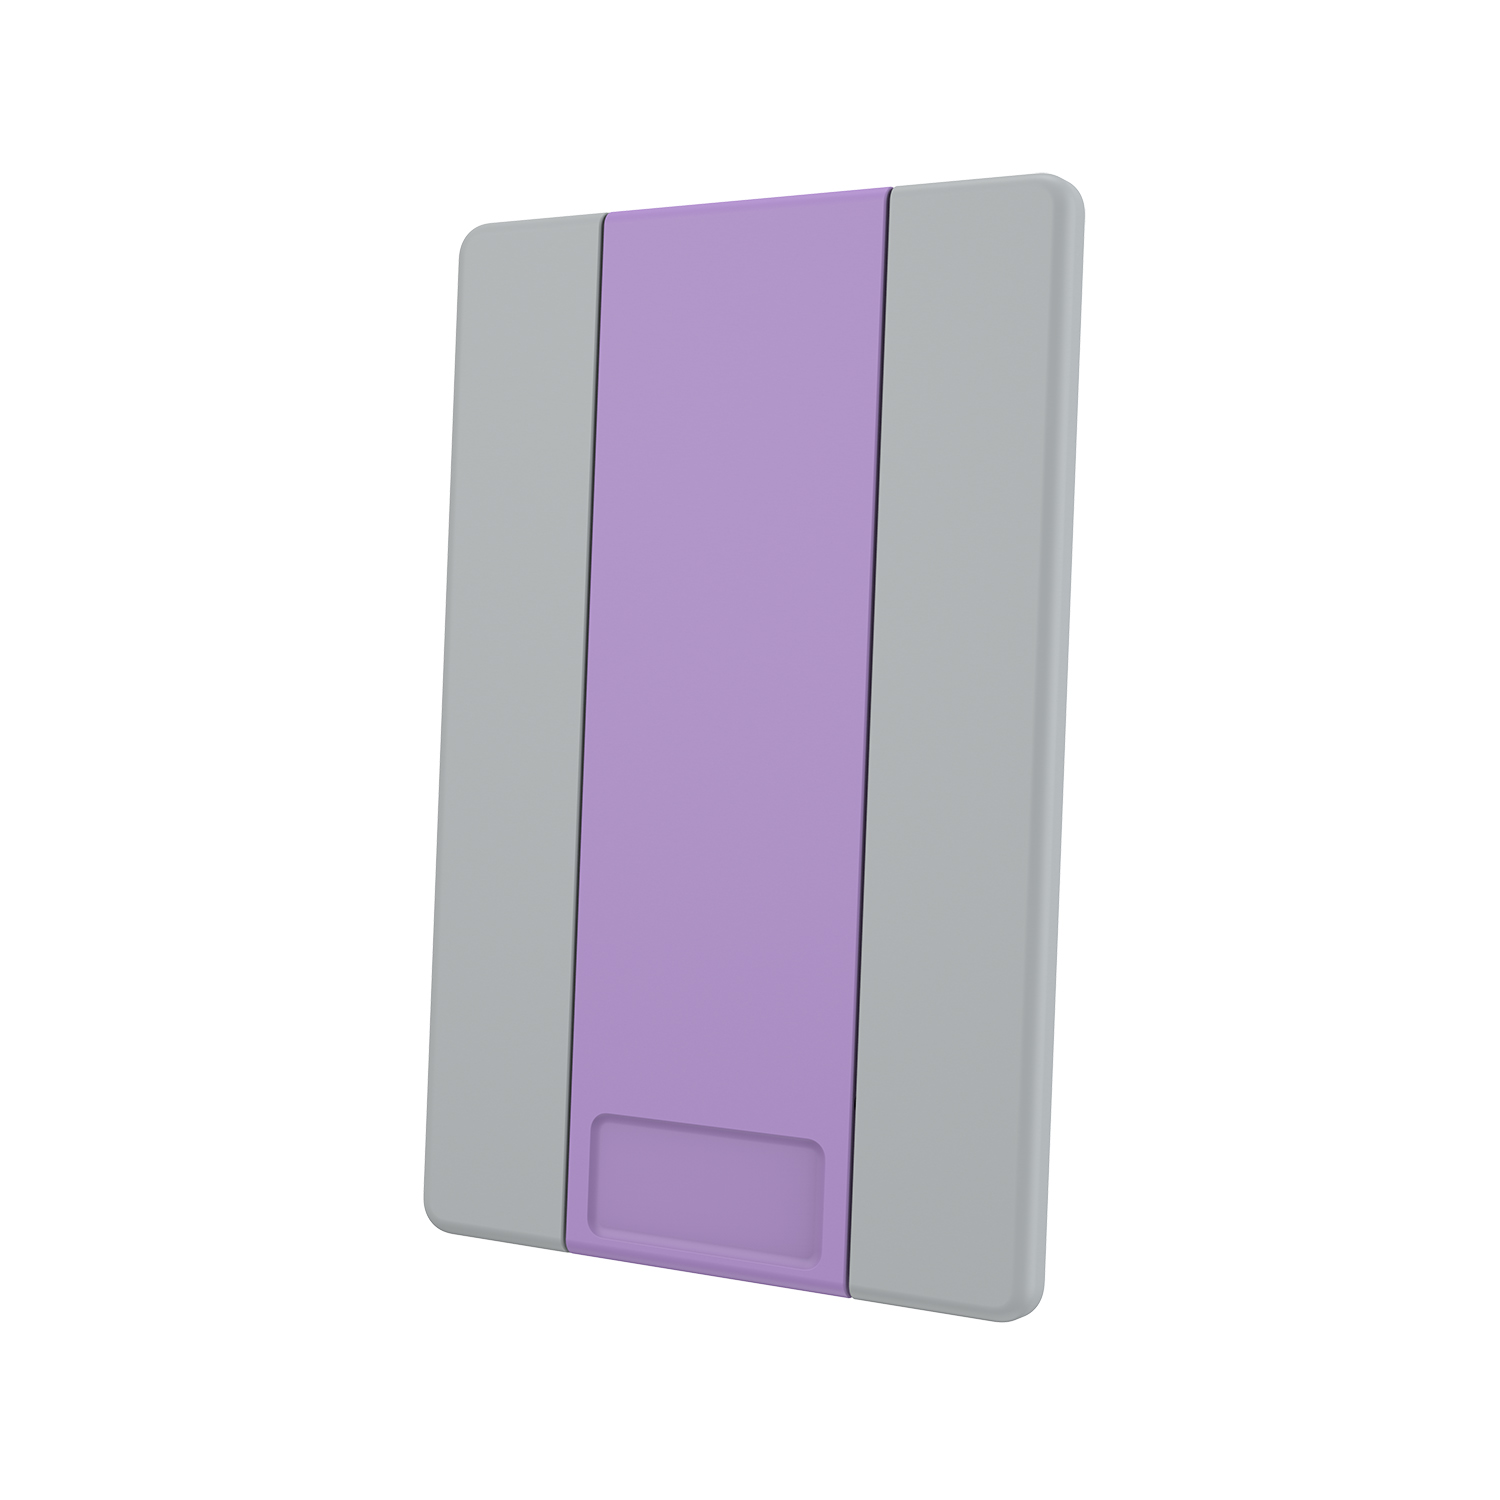 Compare prices for GrabTab Dolphin Grey/Caprice Purple